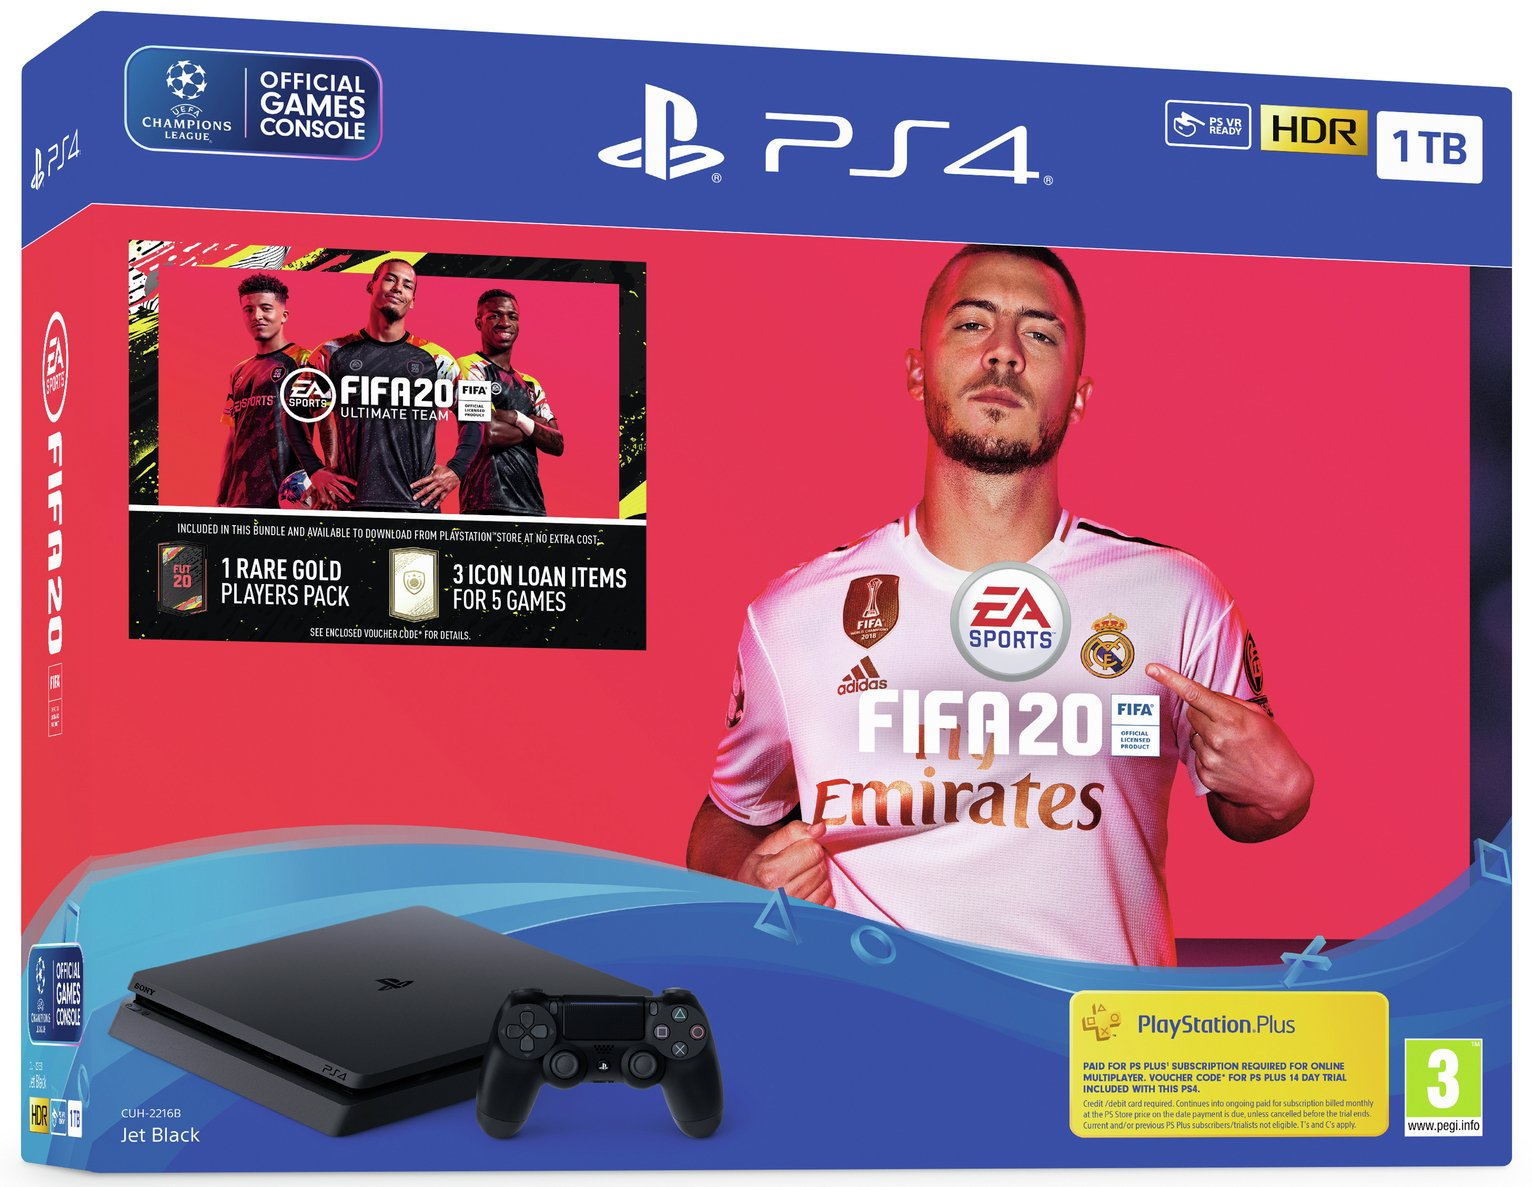 Sony PS4 1TB Console & FIFA 20 Bundle